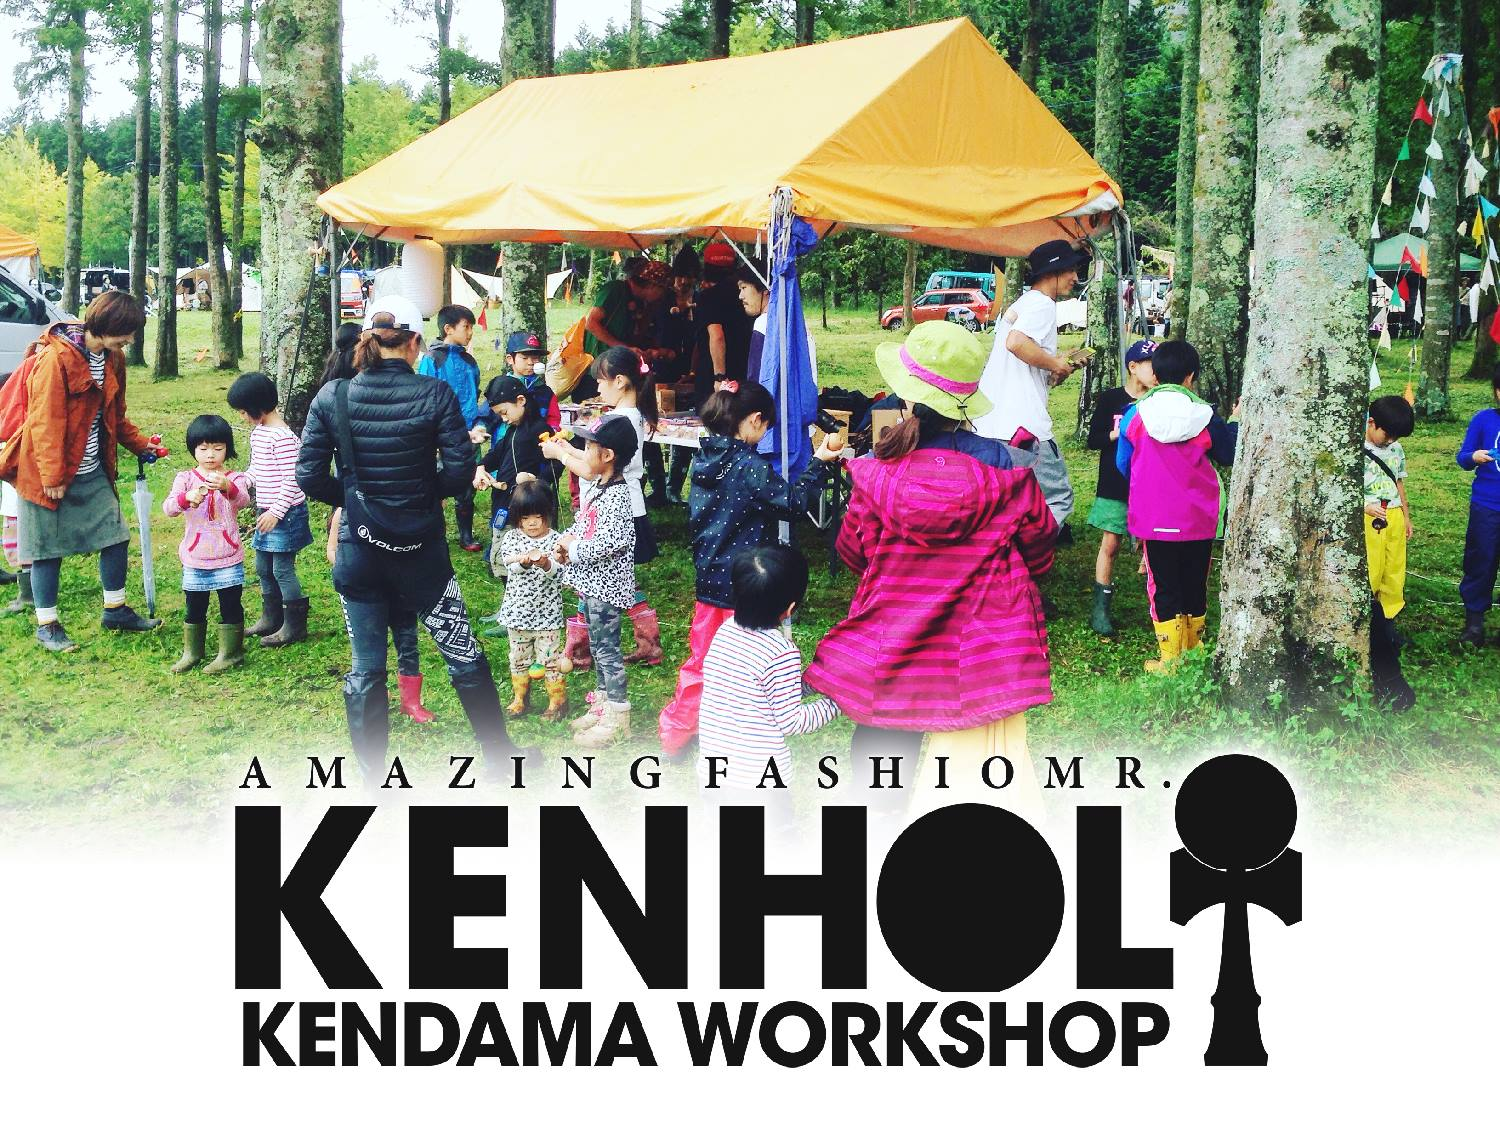 KENHOL KENDAMA WORKSHOP